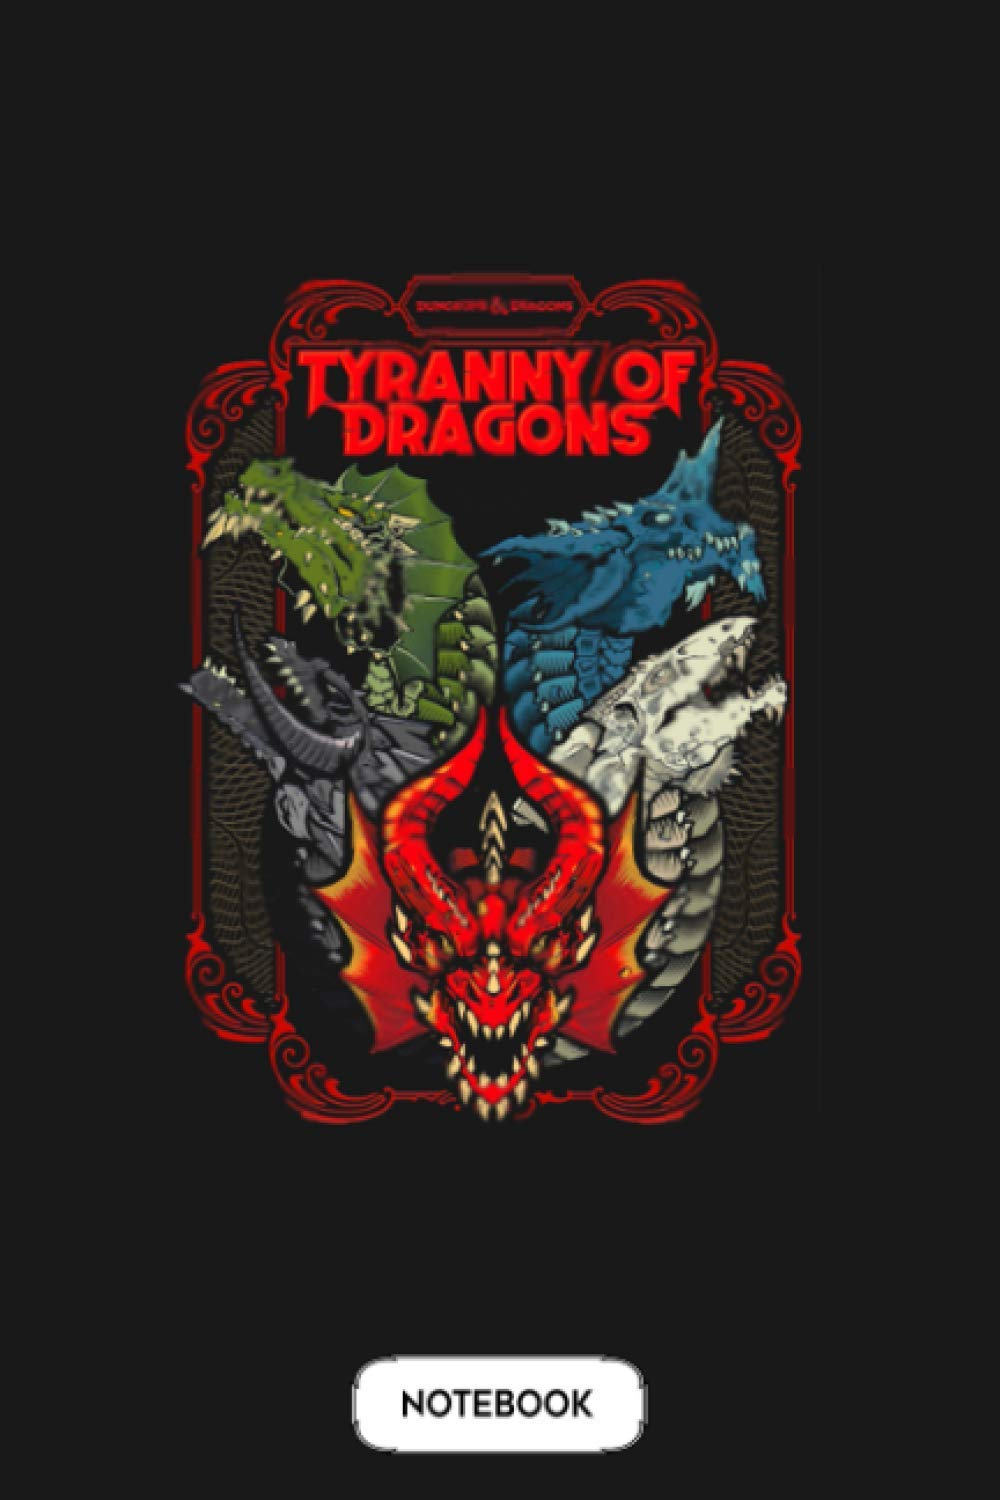 D&d Tyranny Of Dragons Notebook: Journal, 6x9 120 Pages, Diary, Matte Finish Cover, Planner, Lined College Ruled Paper